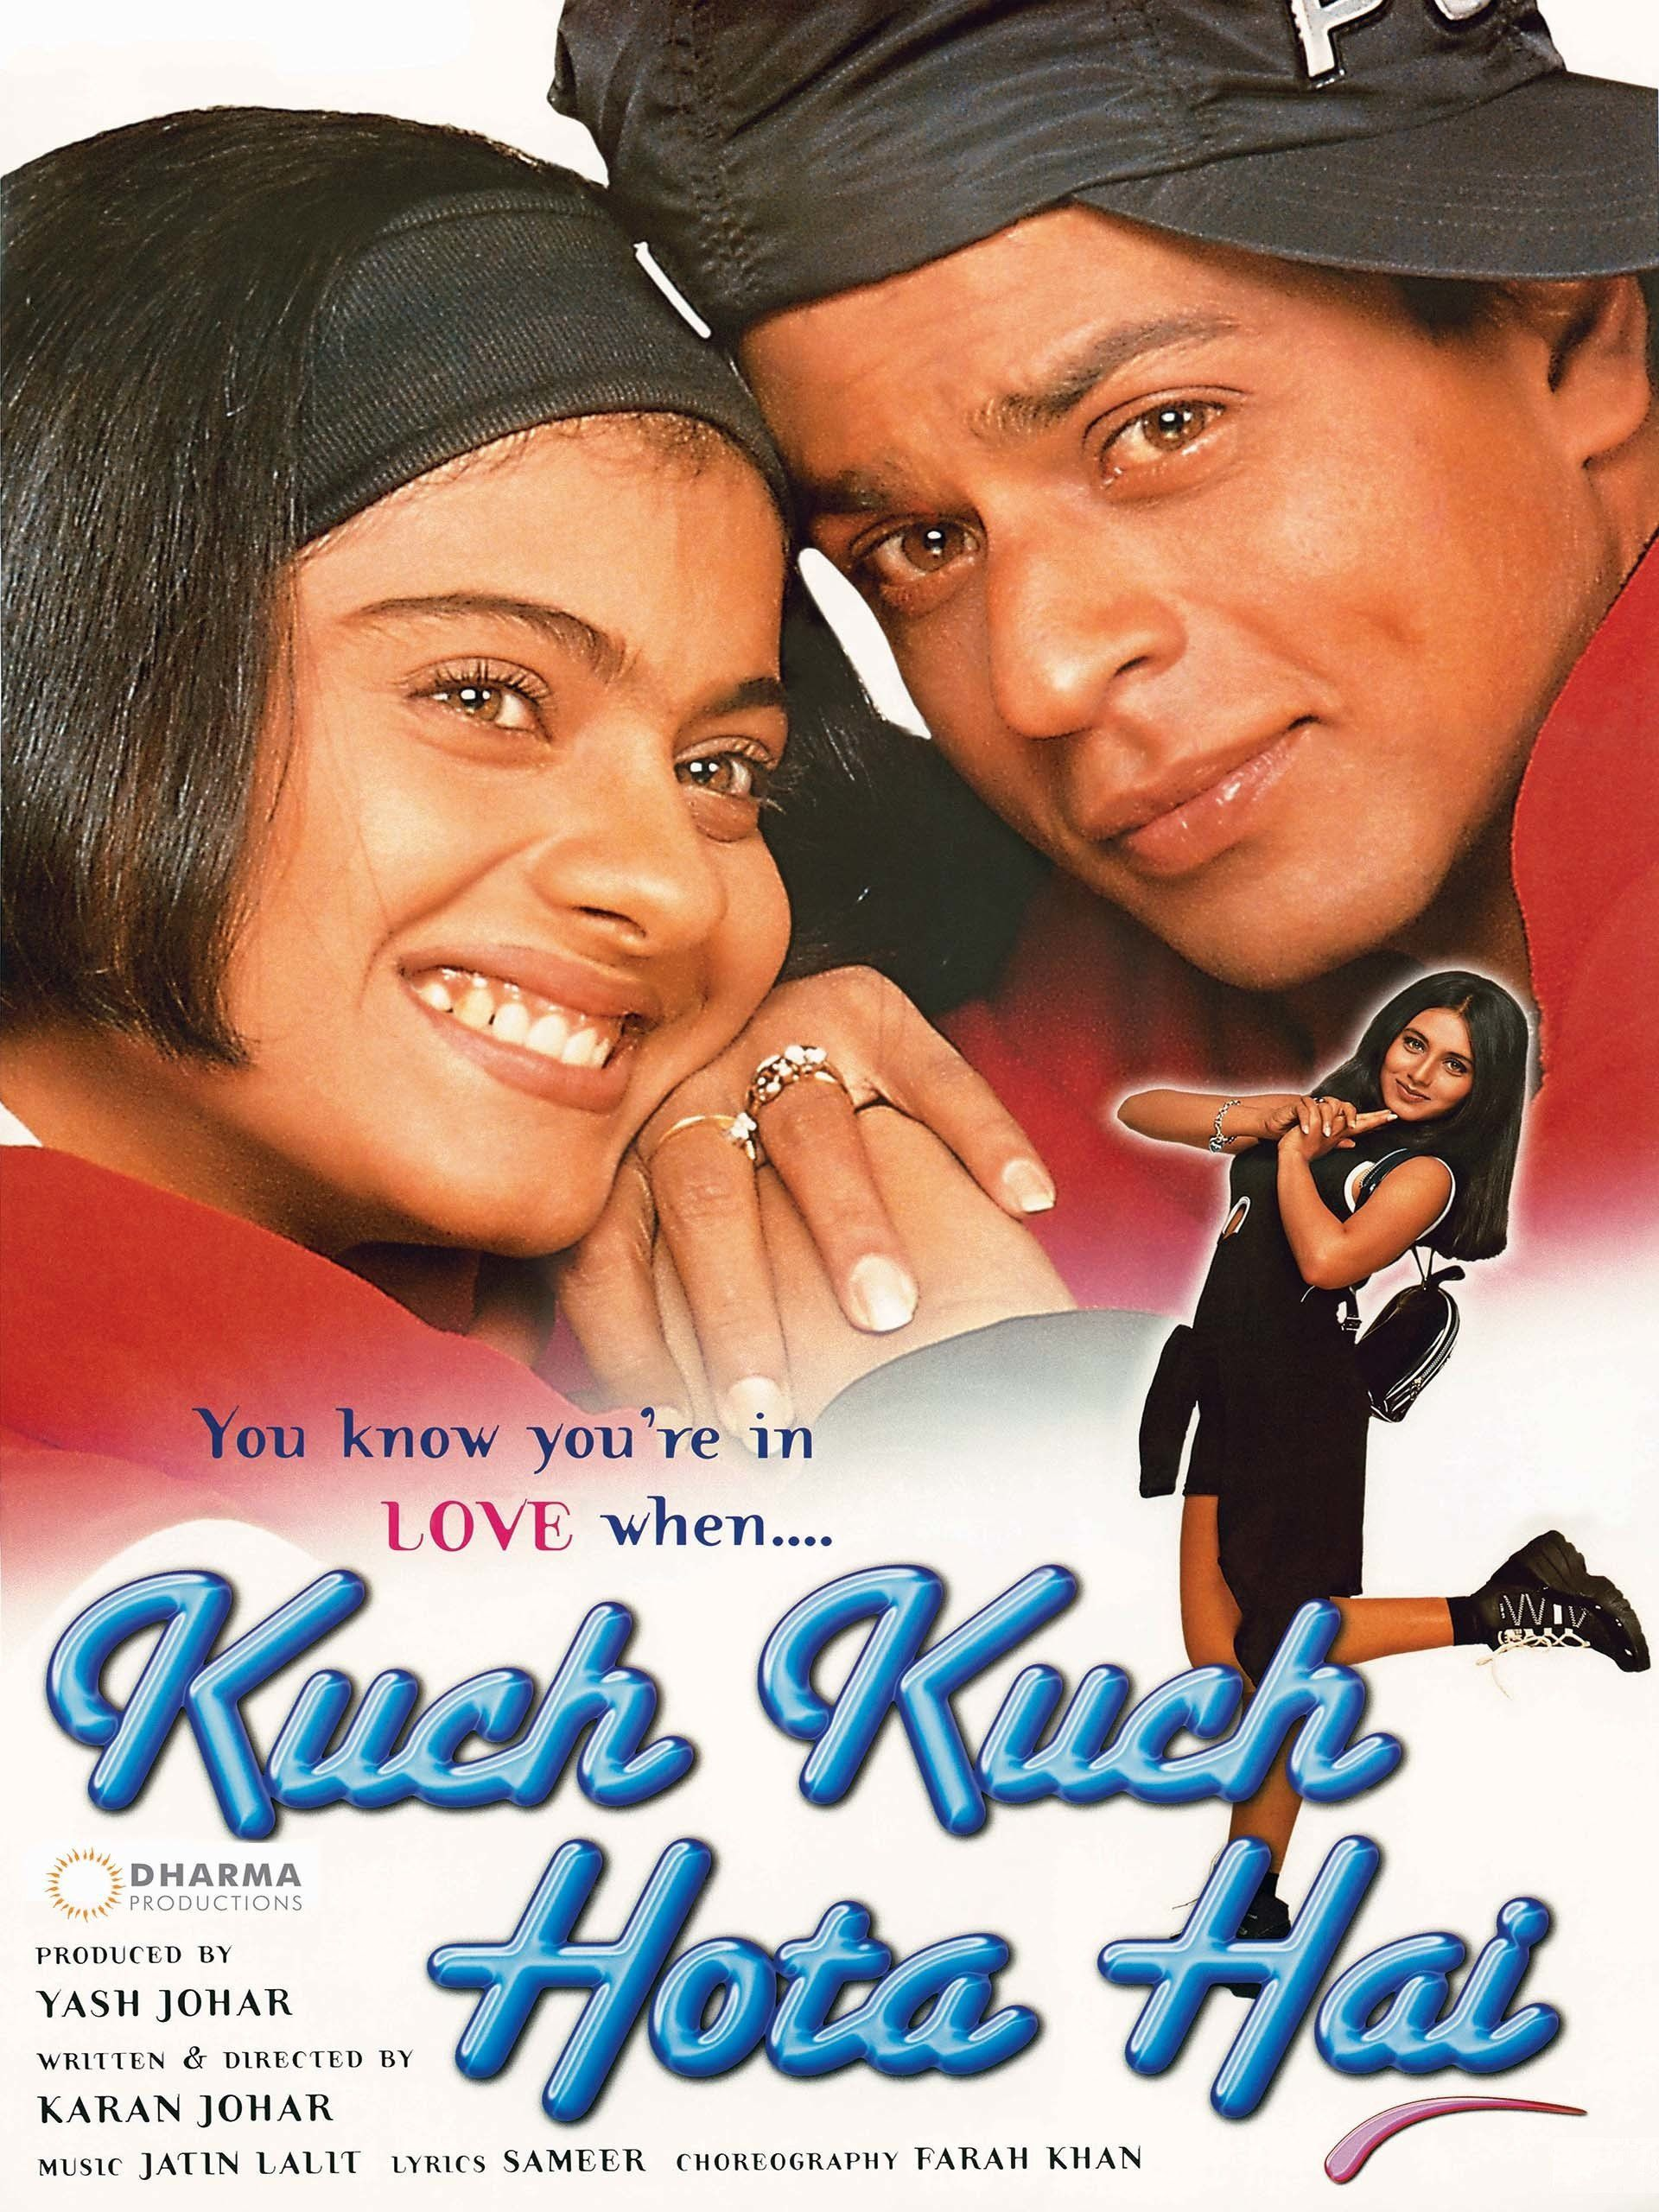 Pin By Dhushee On Full Movies Kuch Kuch Hota Hai Best Bollywood Movies Movies